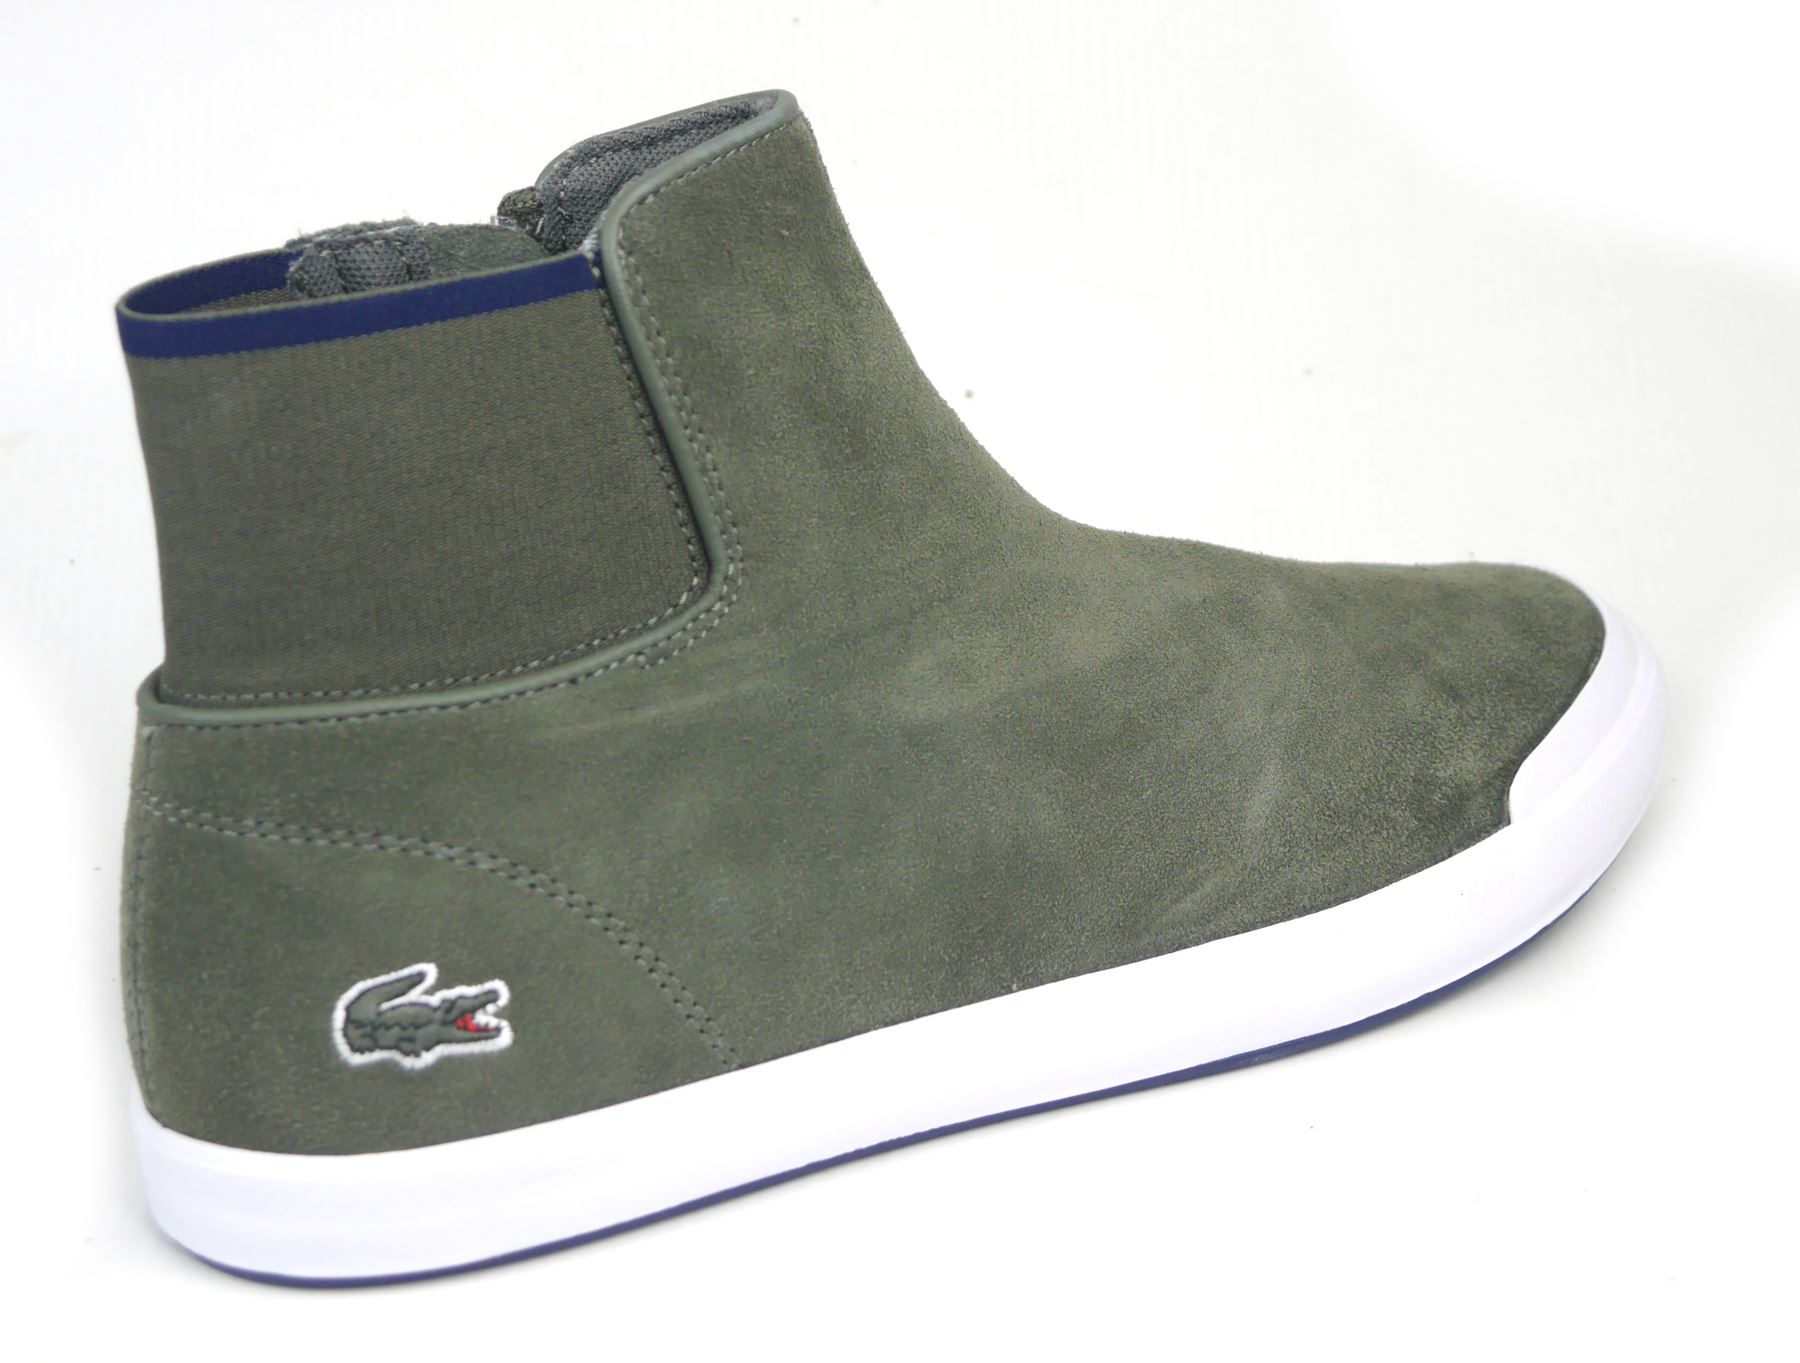 a51f8f1eb06ee3 Brand new model of boots from Lacoste. The upper part is created from  genuine suede leather and protects from cold weather. The lining is made of  textile.